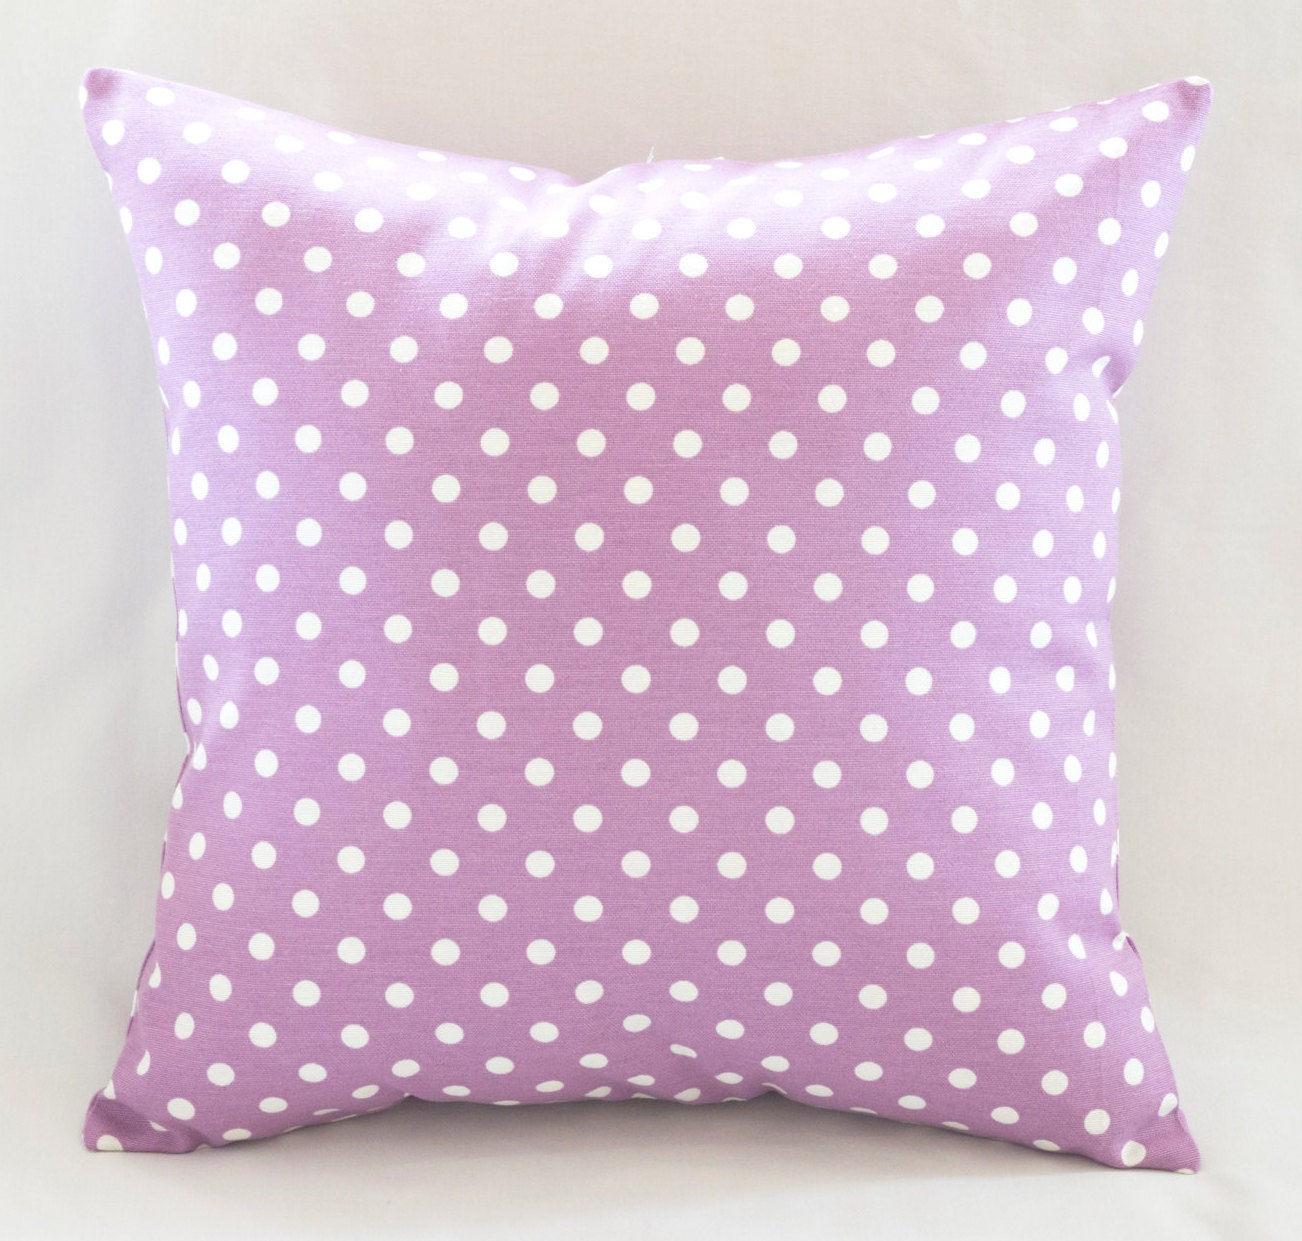 Lilac Polka-Dot Decorative Pillow Spotty Cushion by prettysurprise